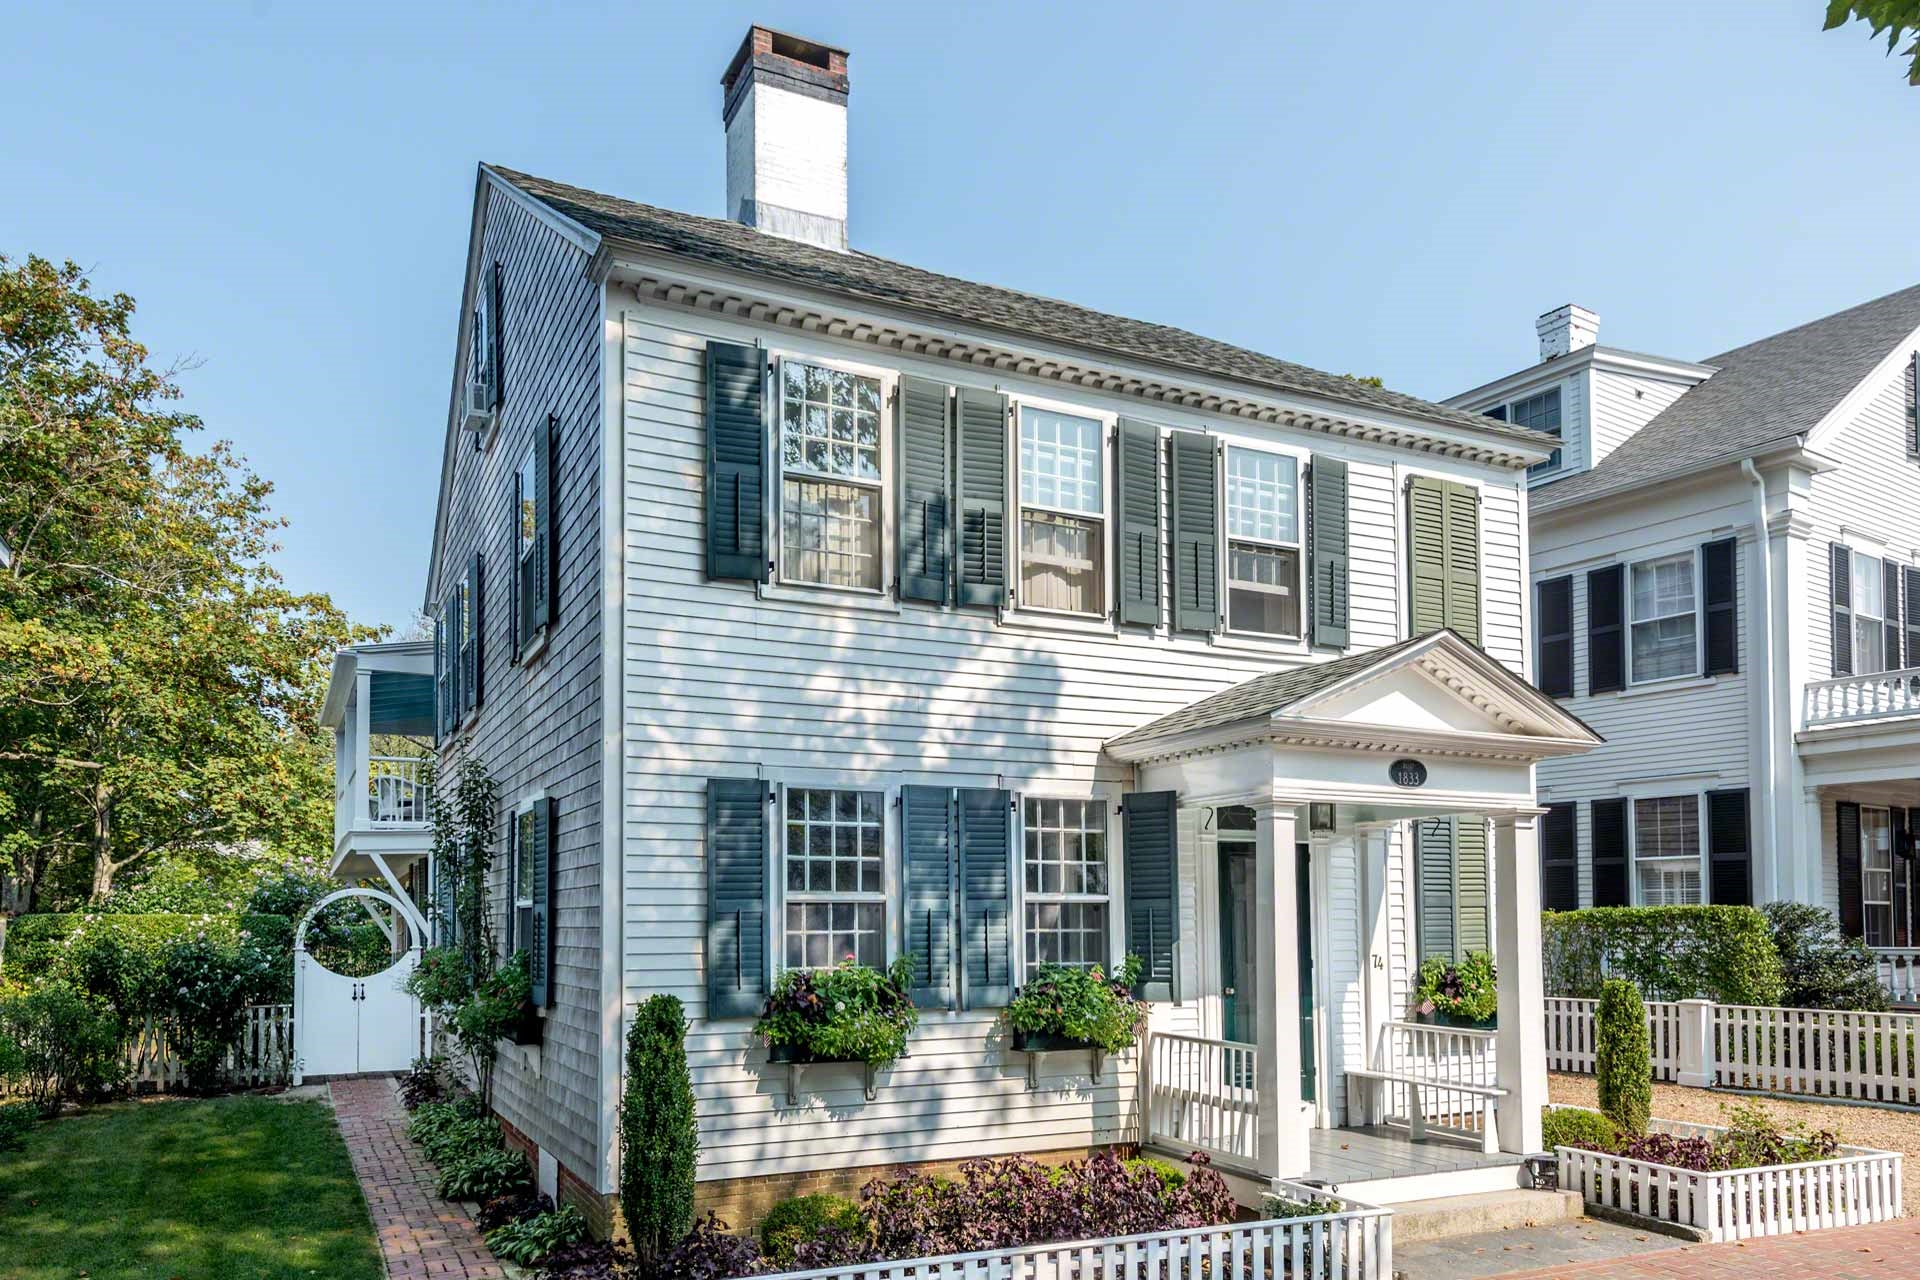 74 North Water Street, Edgartown Unit: Newly Listed